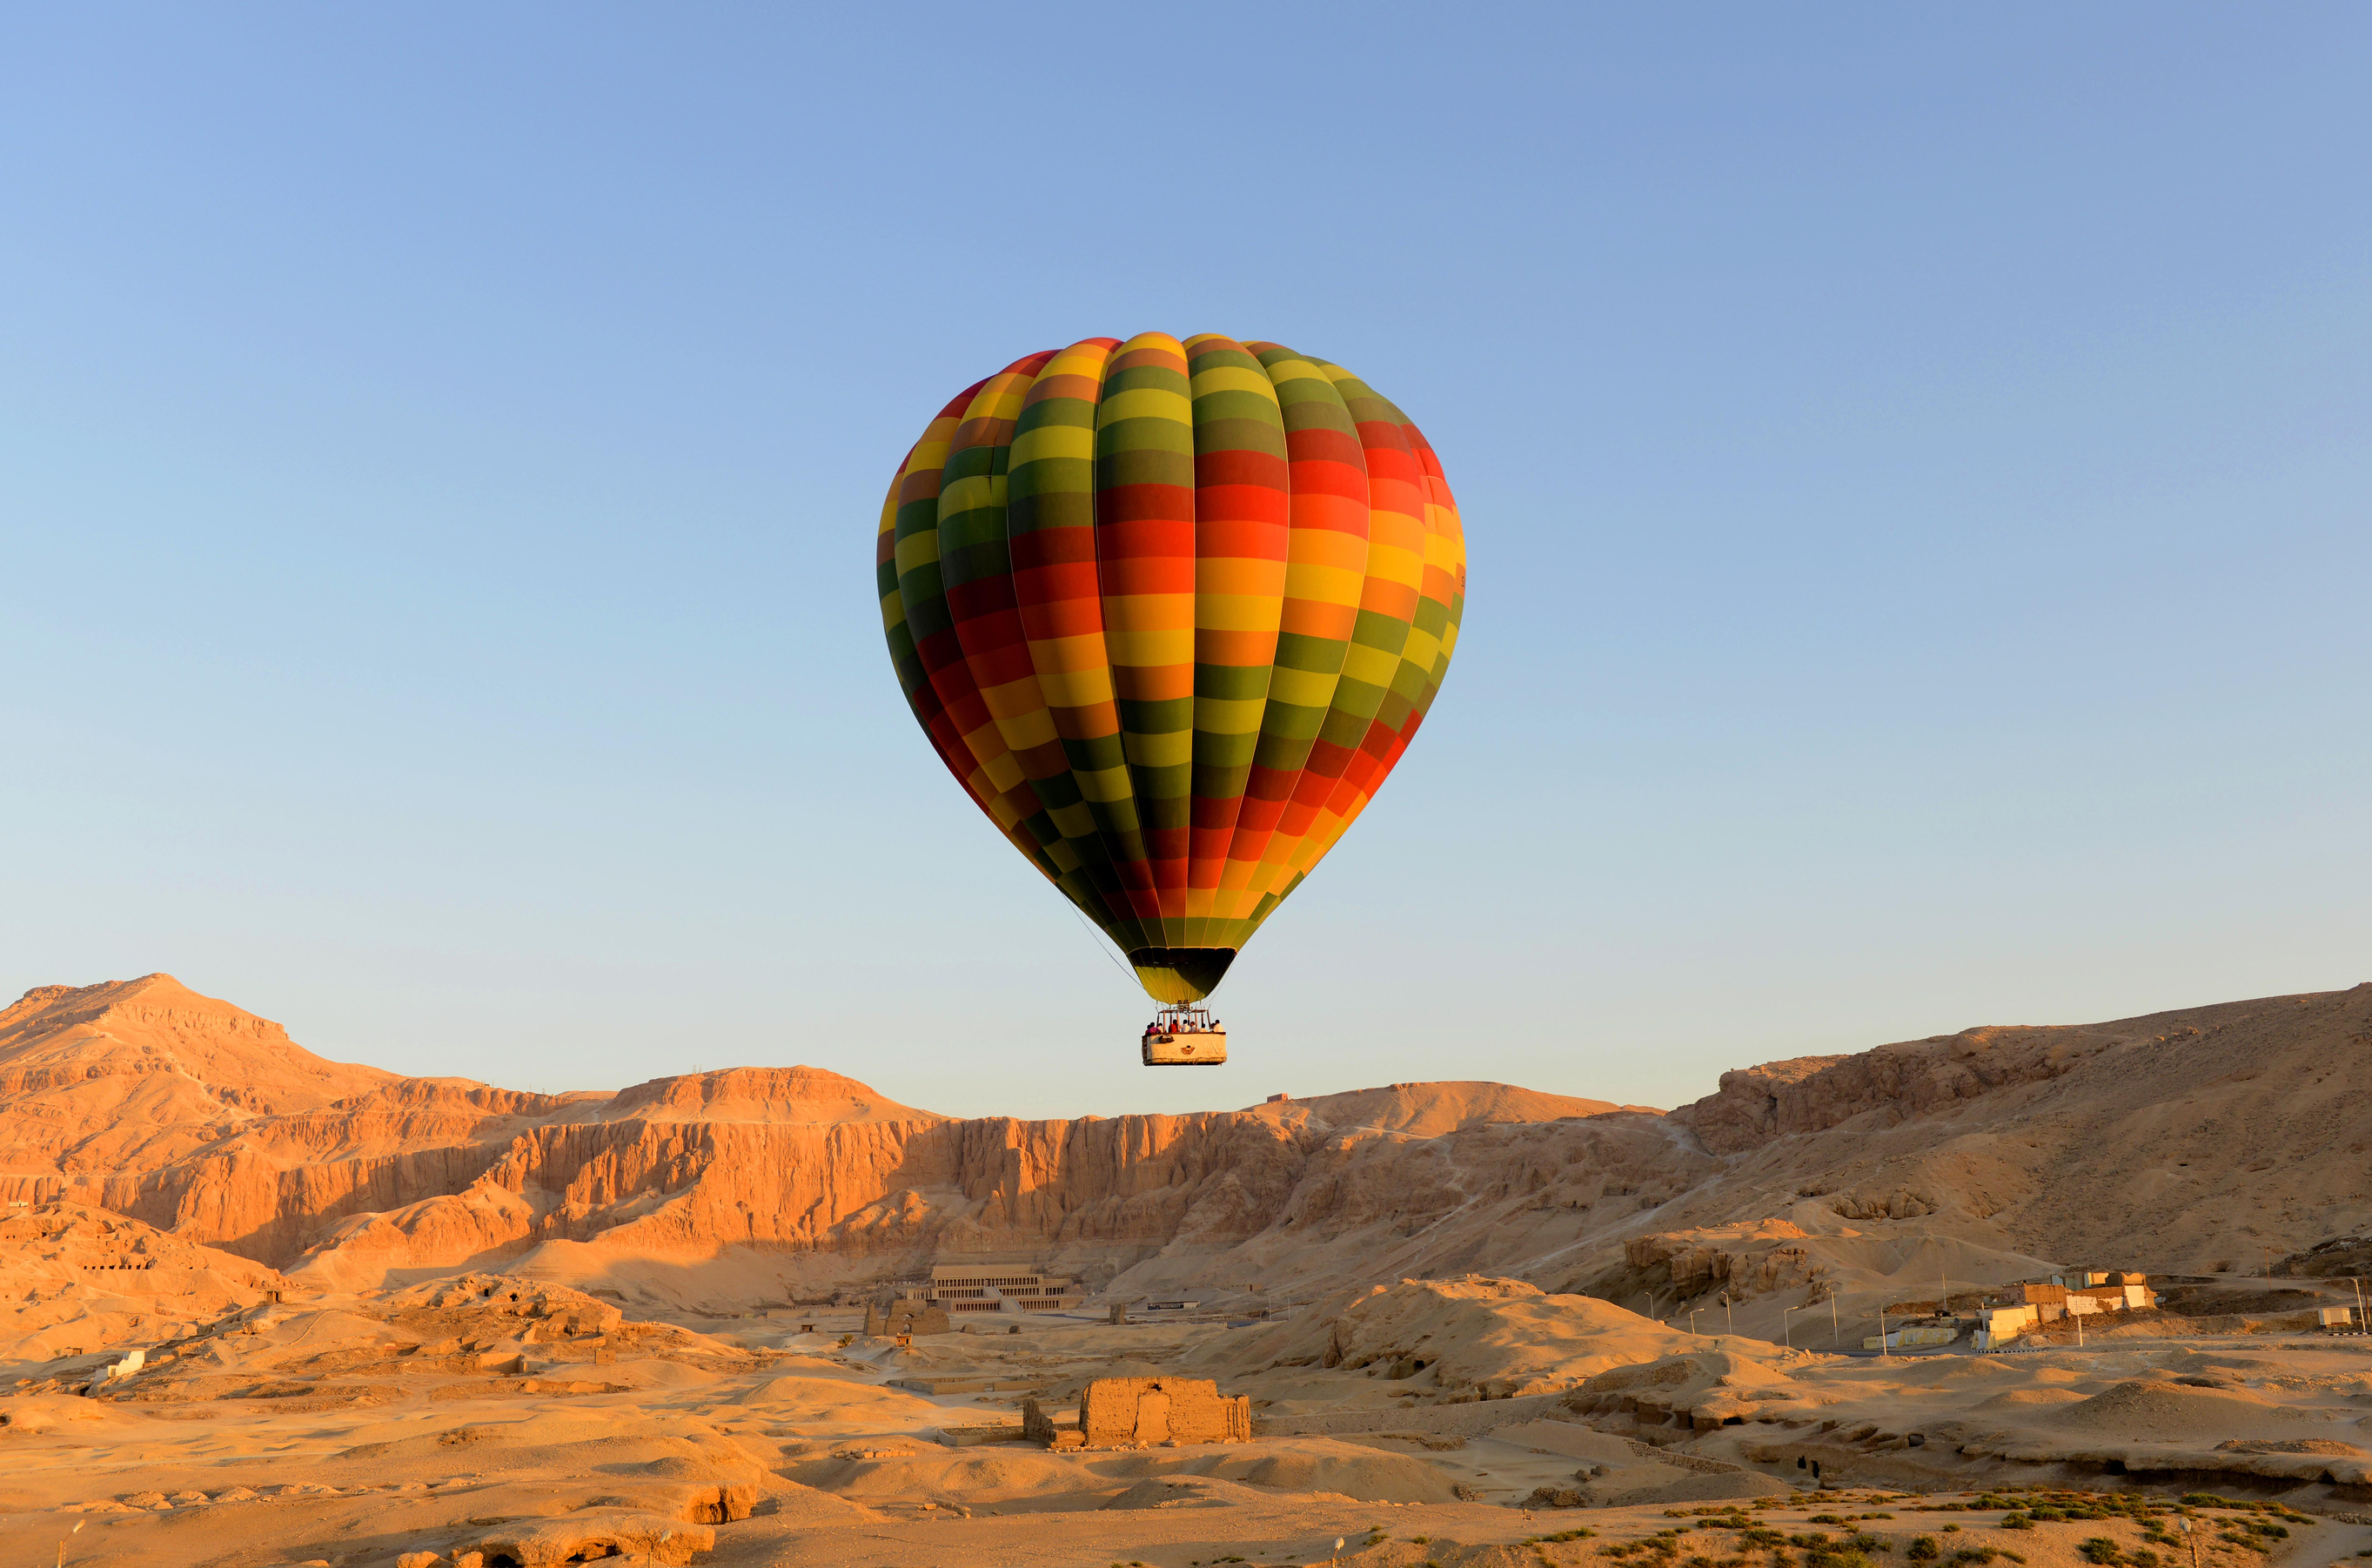 Hot air balloon lifting off in Egypt.